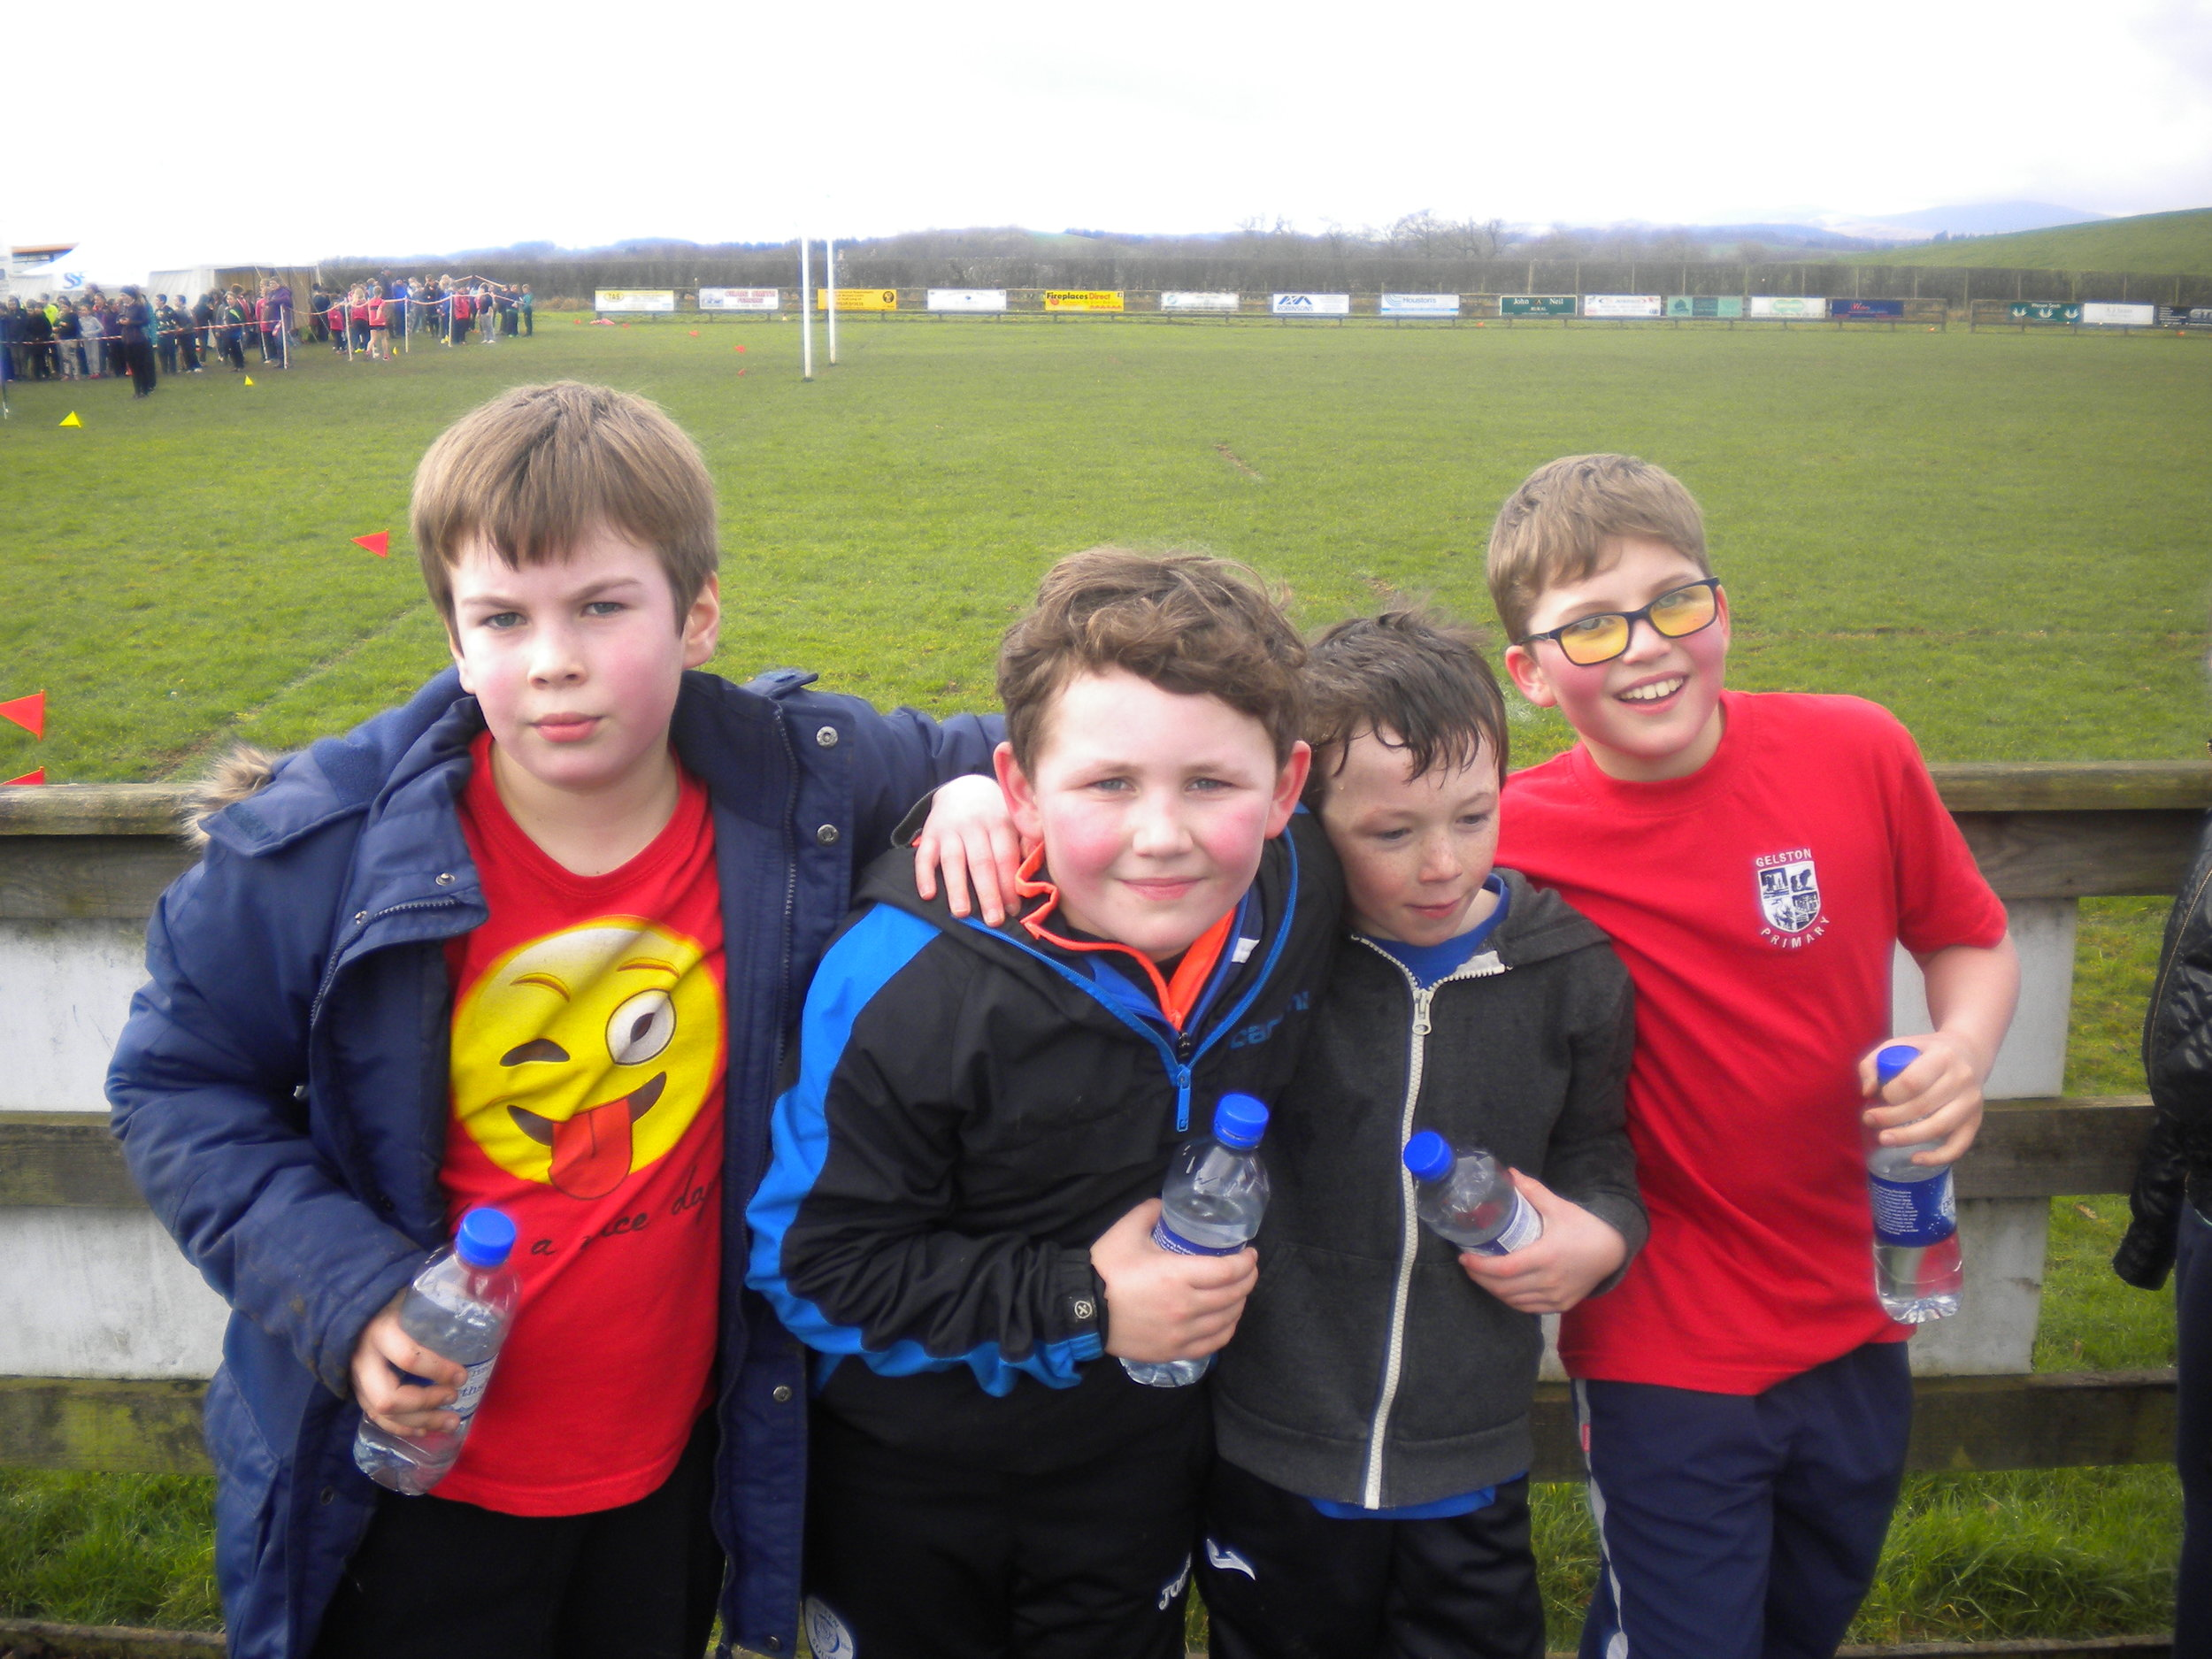 P5 boys survived their first experience of the festival.